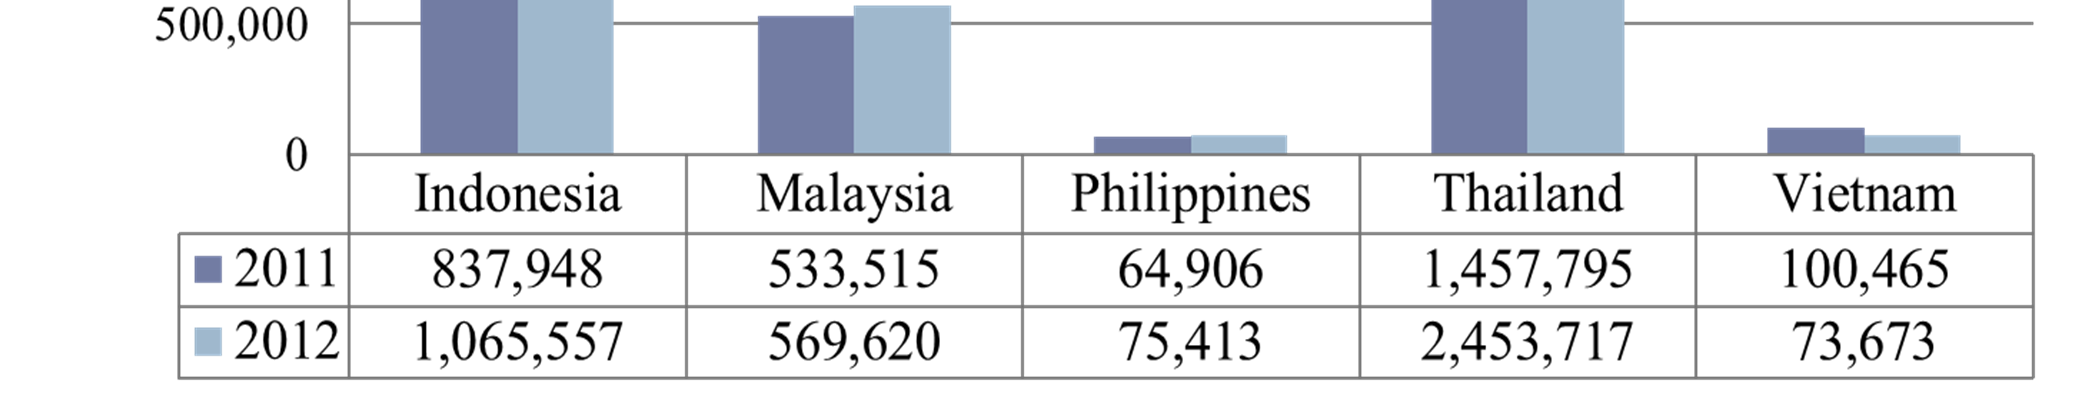 Car Production & Share, 2012 Growth +42% Total ASEAN 2011: 2.99 million units 2012: 4.